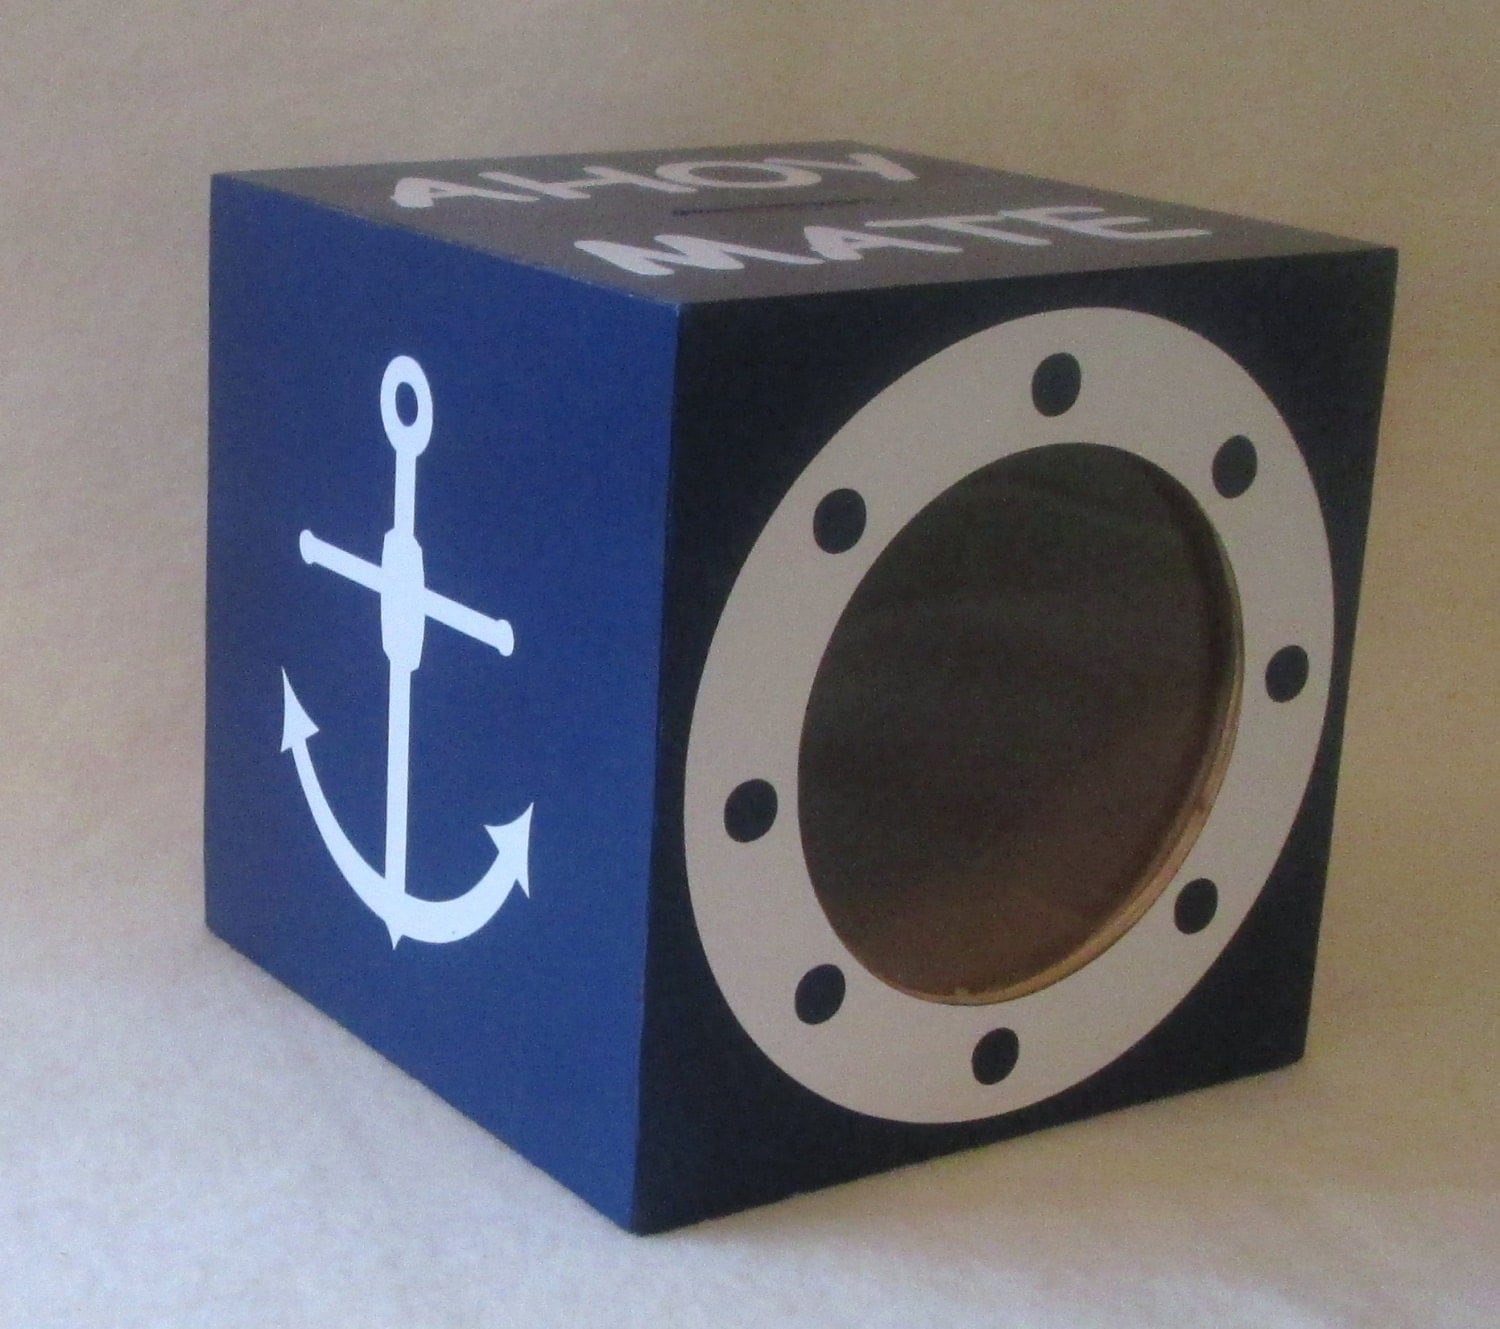 Nautical piggy bank wood bank coin bank by msw2011 on etsy - Nautical piggy banks ...